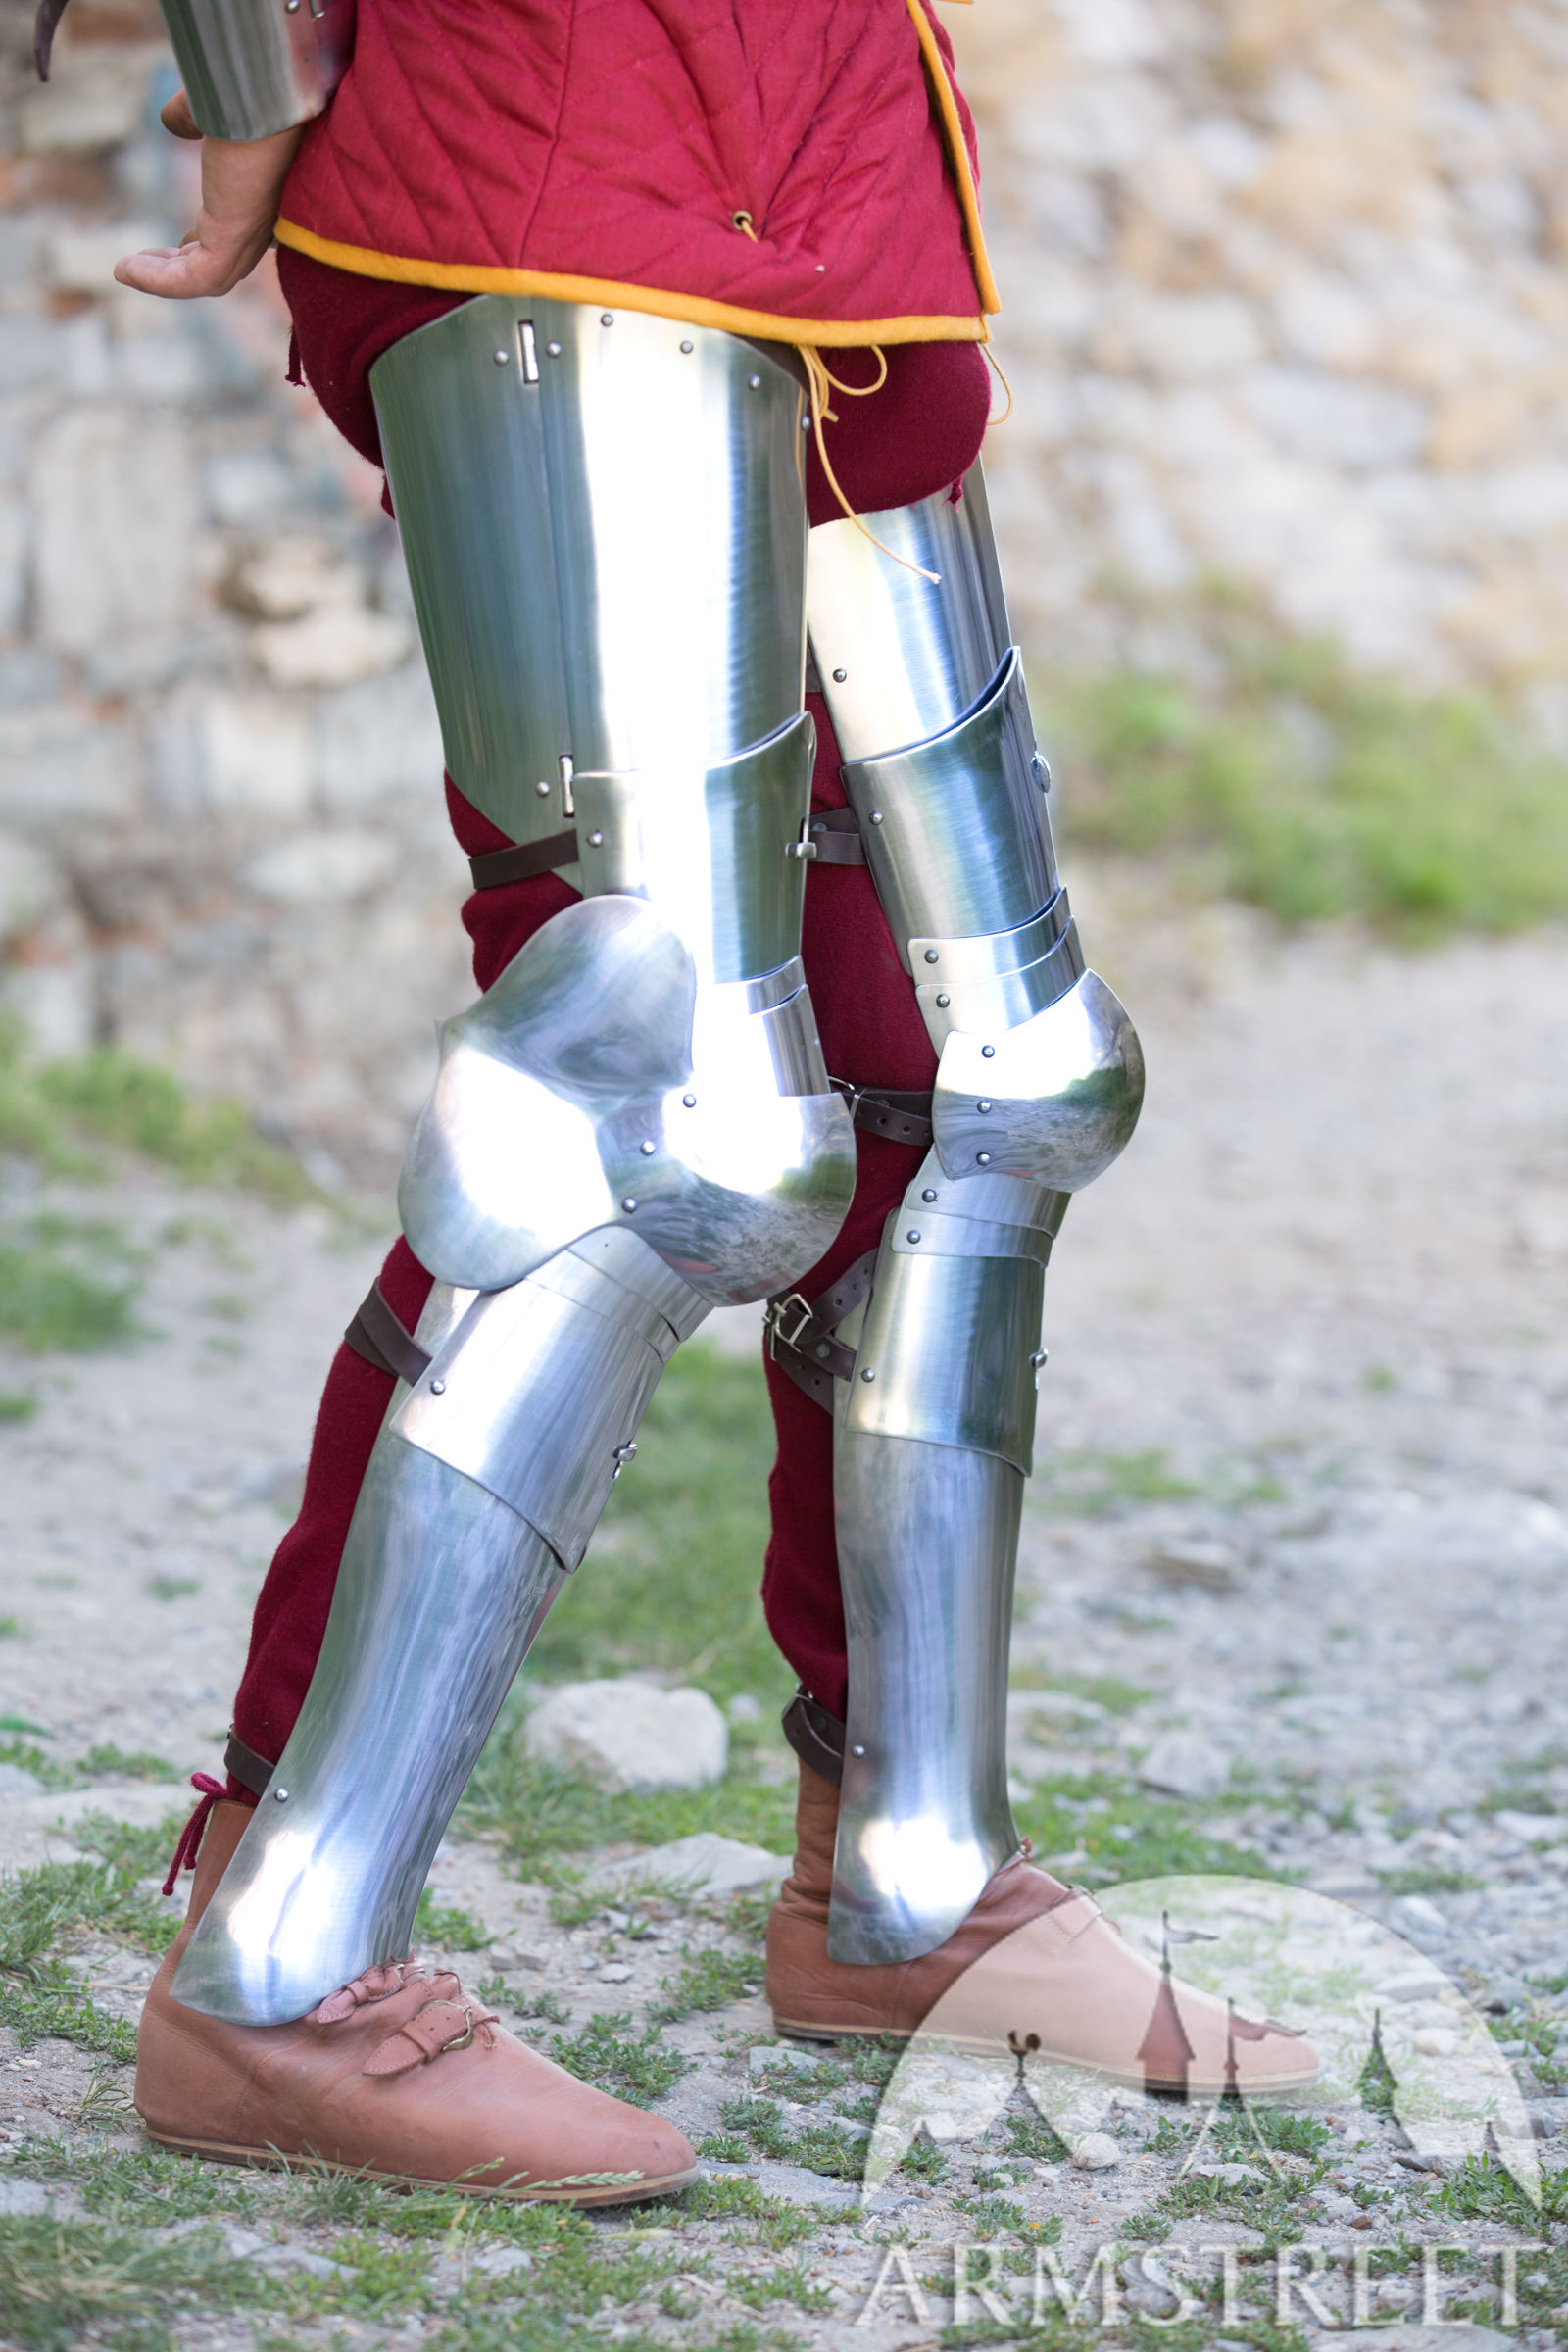 armor legs 3in1 combat kit available in stainless